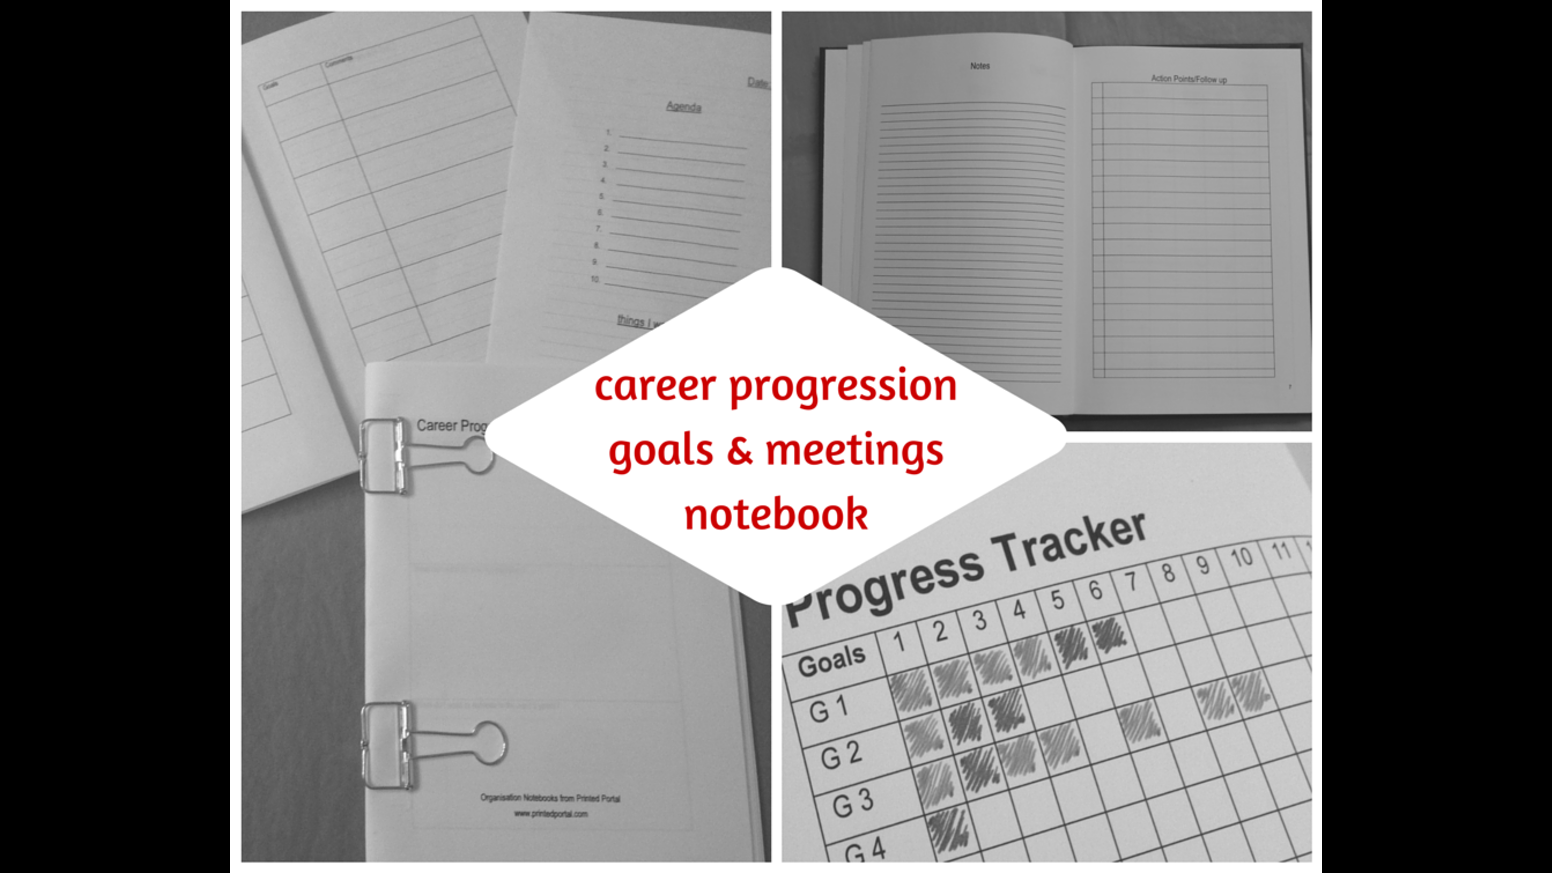 career progression goals meetings notebook by printed portal a functional notebook and planner designed to help you reach your career goals and plan for